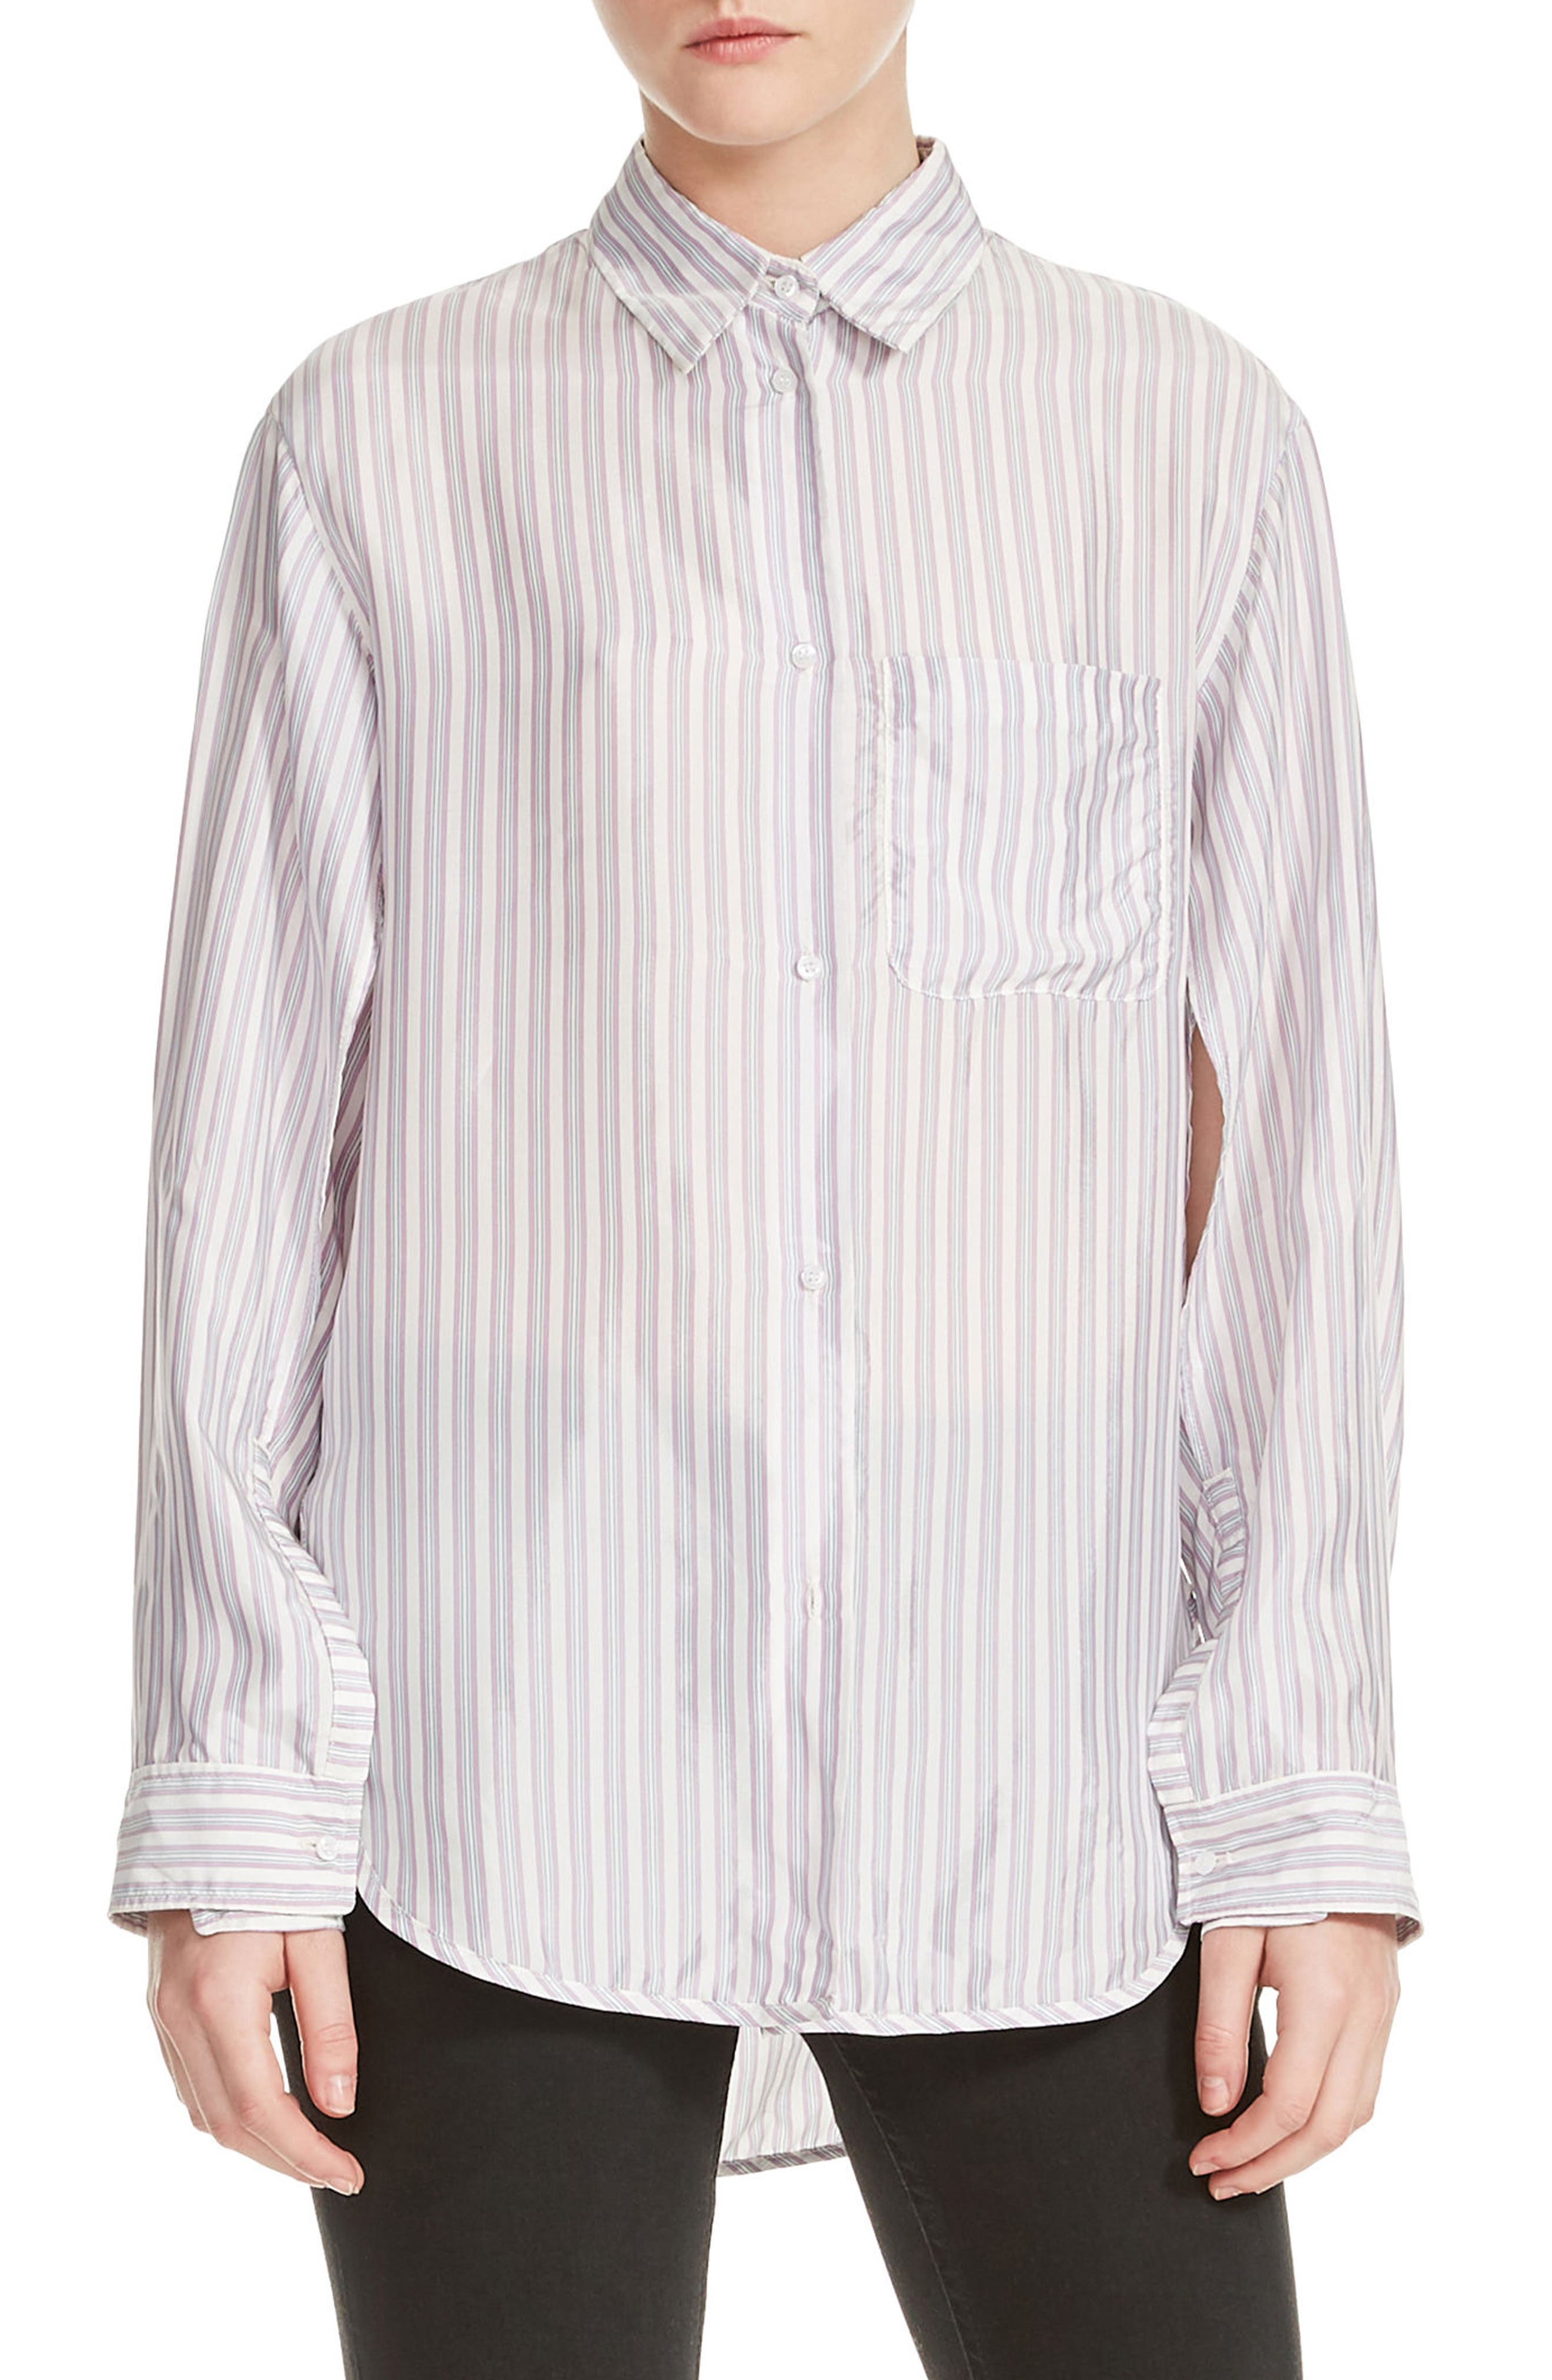 Celina High/Low Stripe Blouse,                         Main,                         color, Stripe